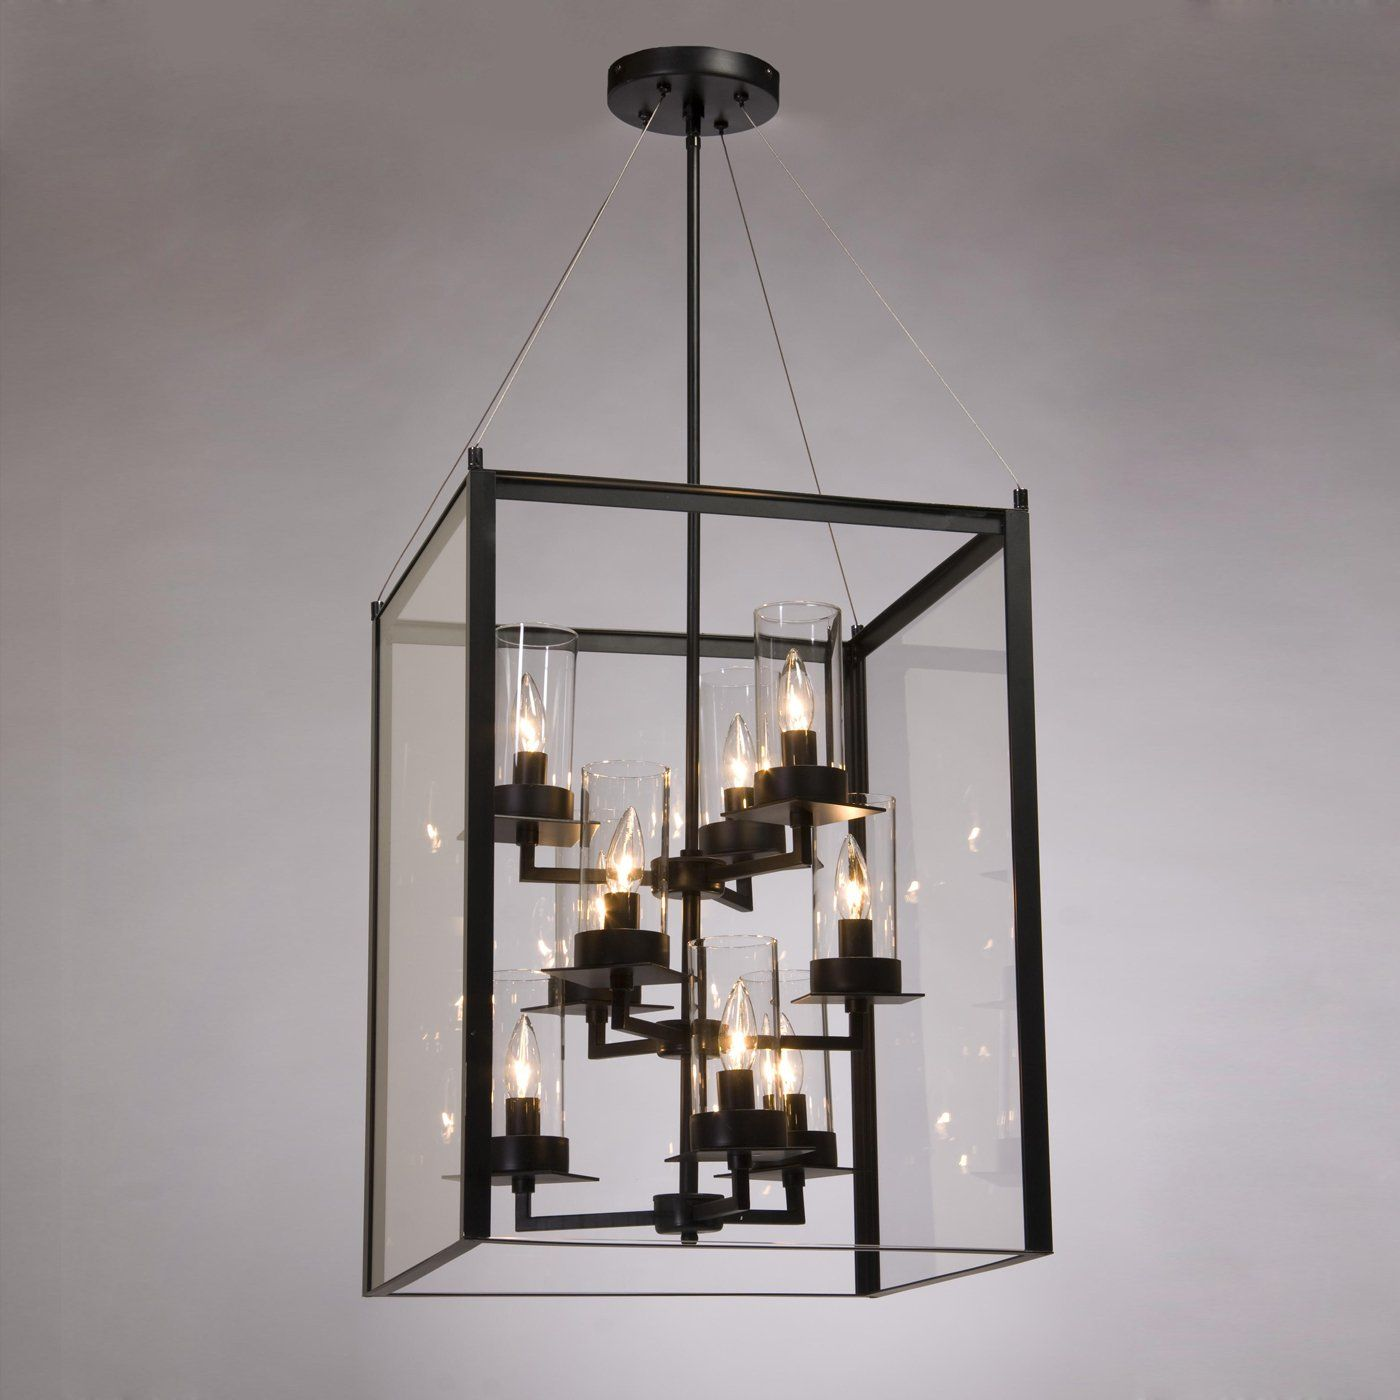 Steven & Chris SC659 9 Light Crawford Foyer Light but i